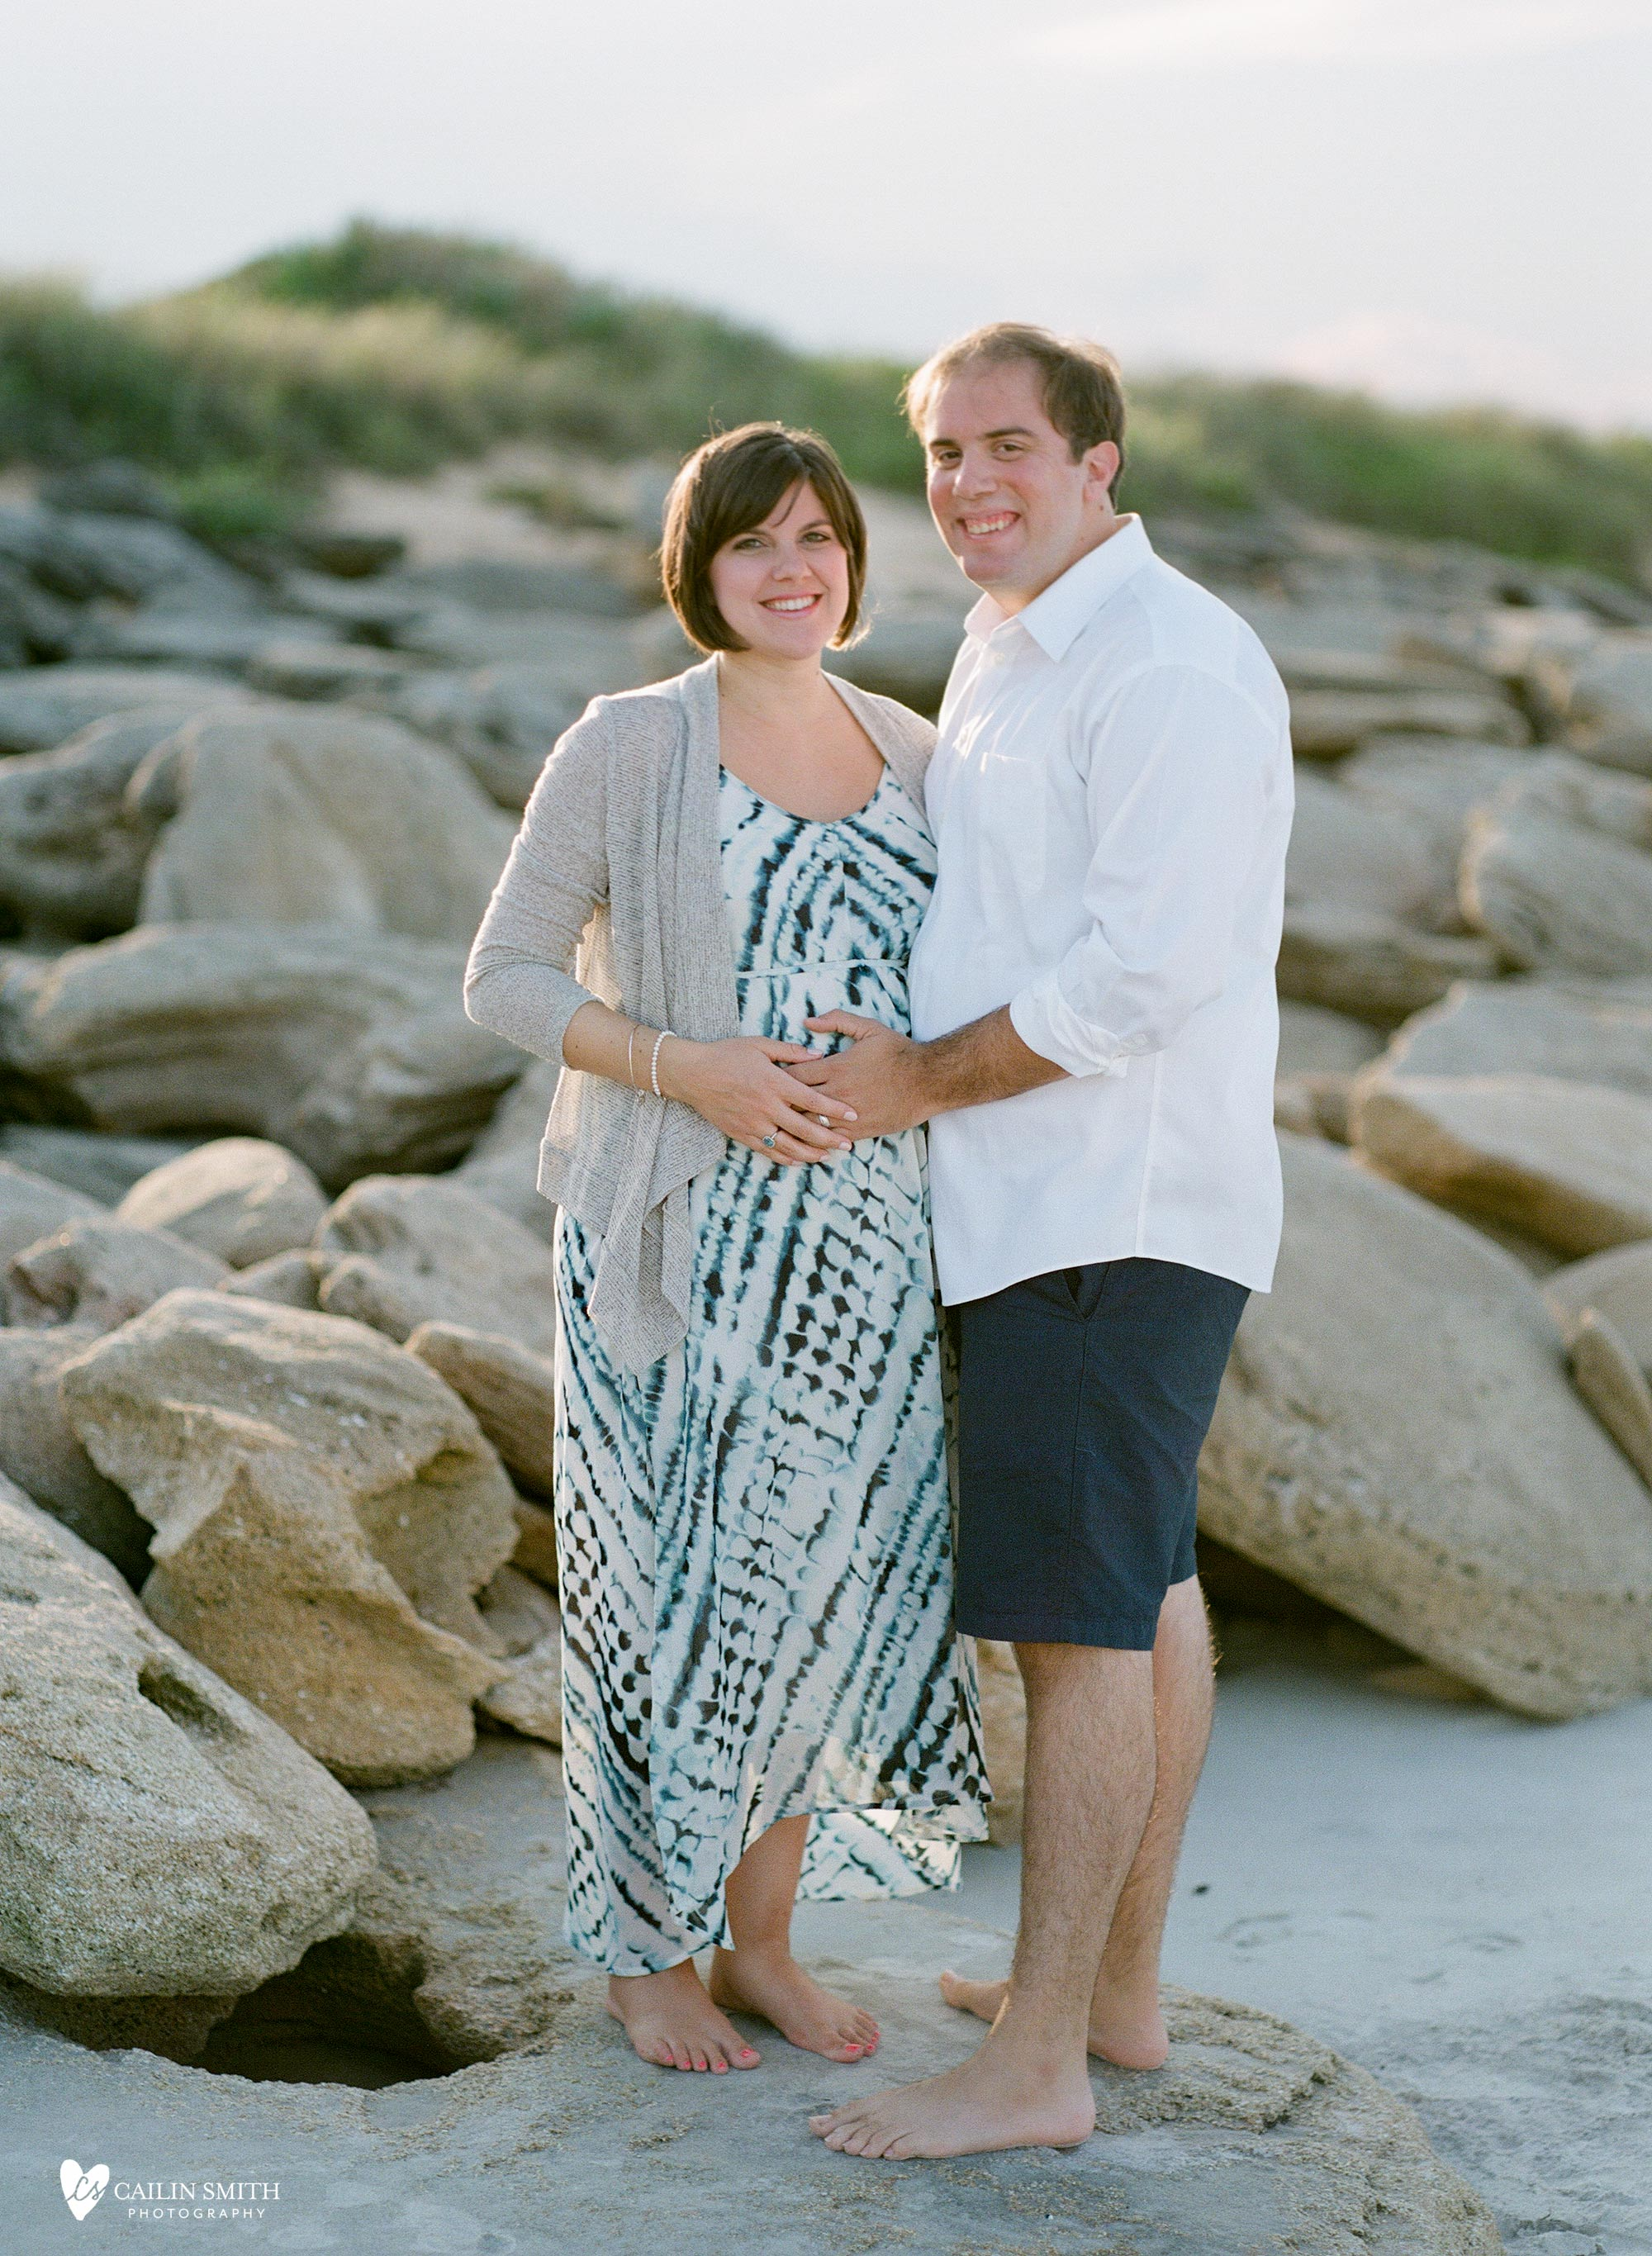 Kelly_Jeff_Maternity_Blog_001.jpg